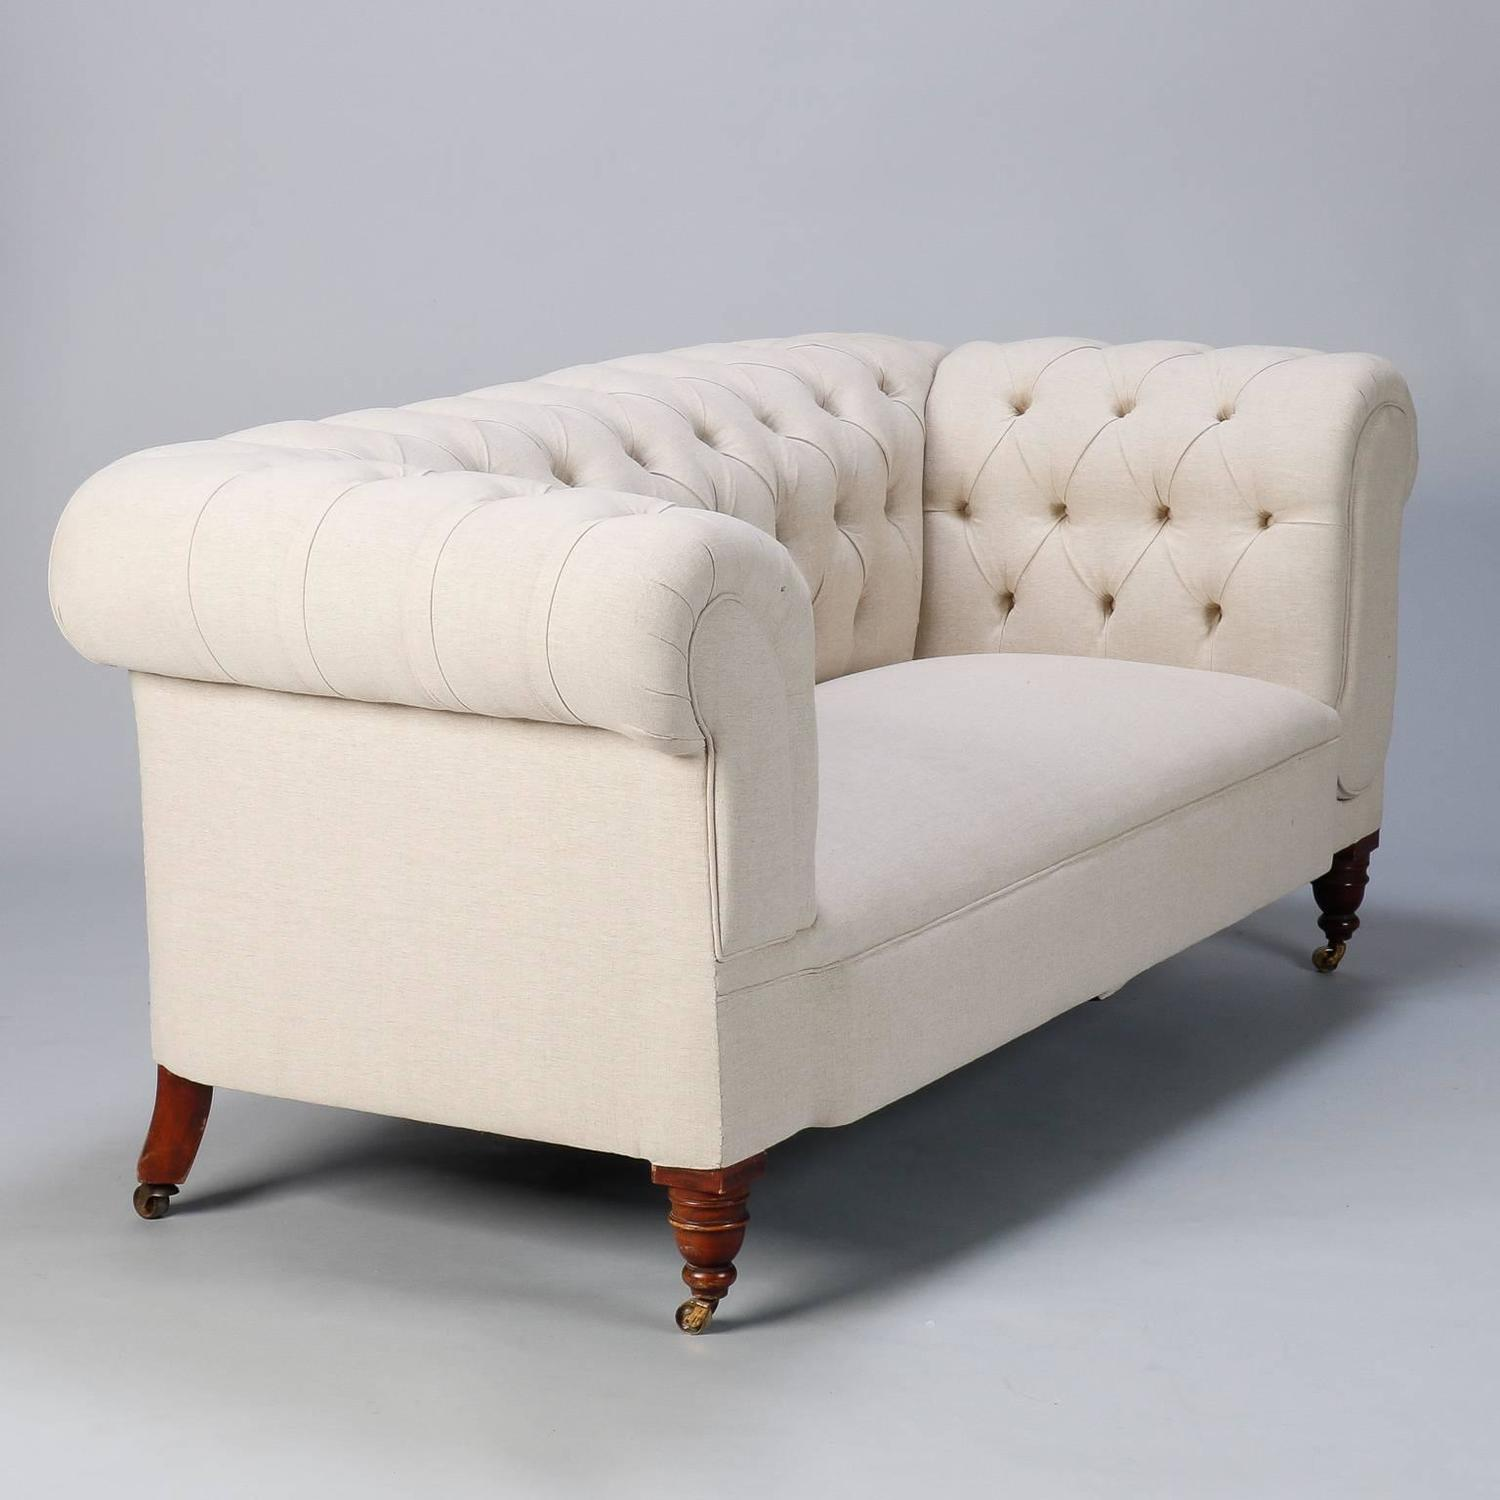 linen chesterfield sofa with collapsible arm at 1stdibs. Black Bedroom Furniture Sets. Home Design Ideas